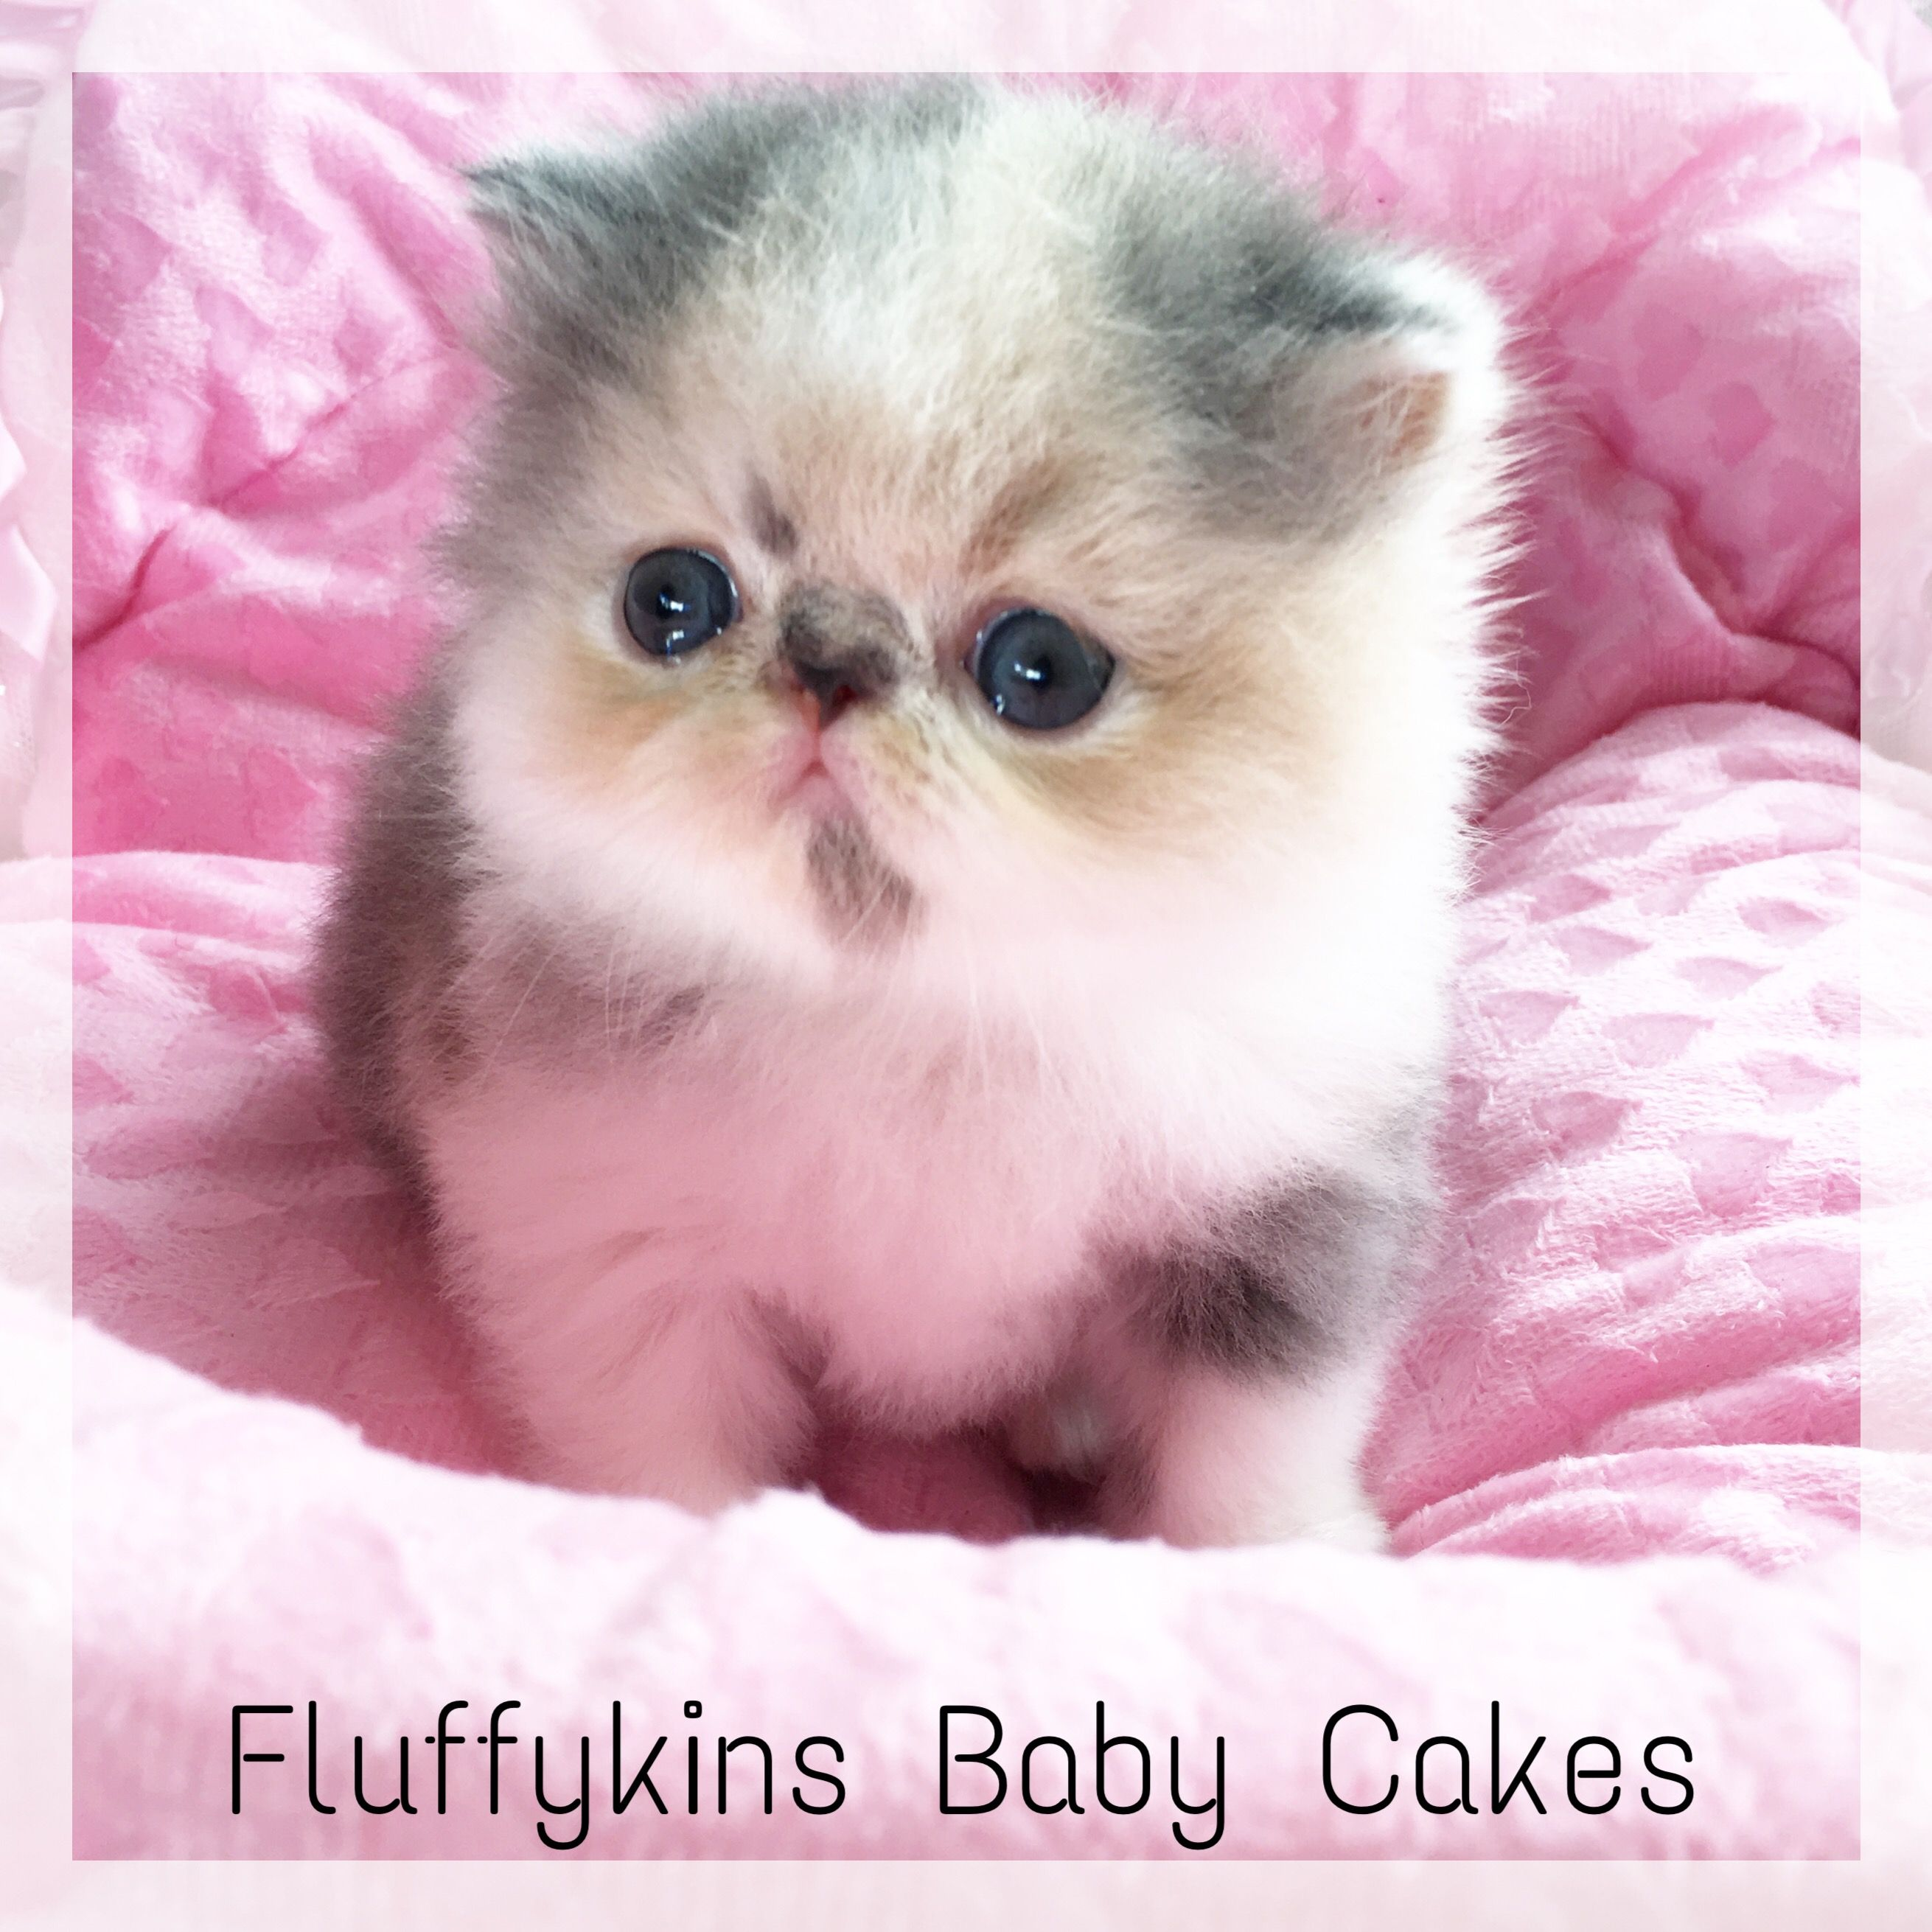 So Sweet Fluffykins Baby Cakes My Bluecream Smoke Bicolour Baby Girl Now Four Weeks Old Kittens Kittens Cutest Cute Cats And Kittens Persian Kittens